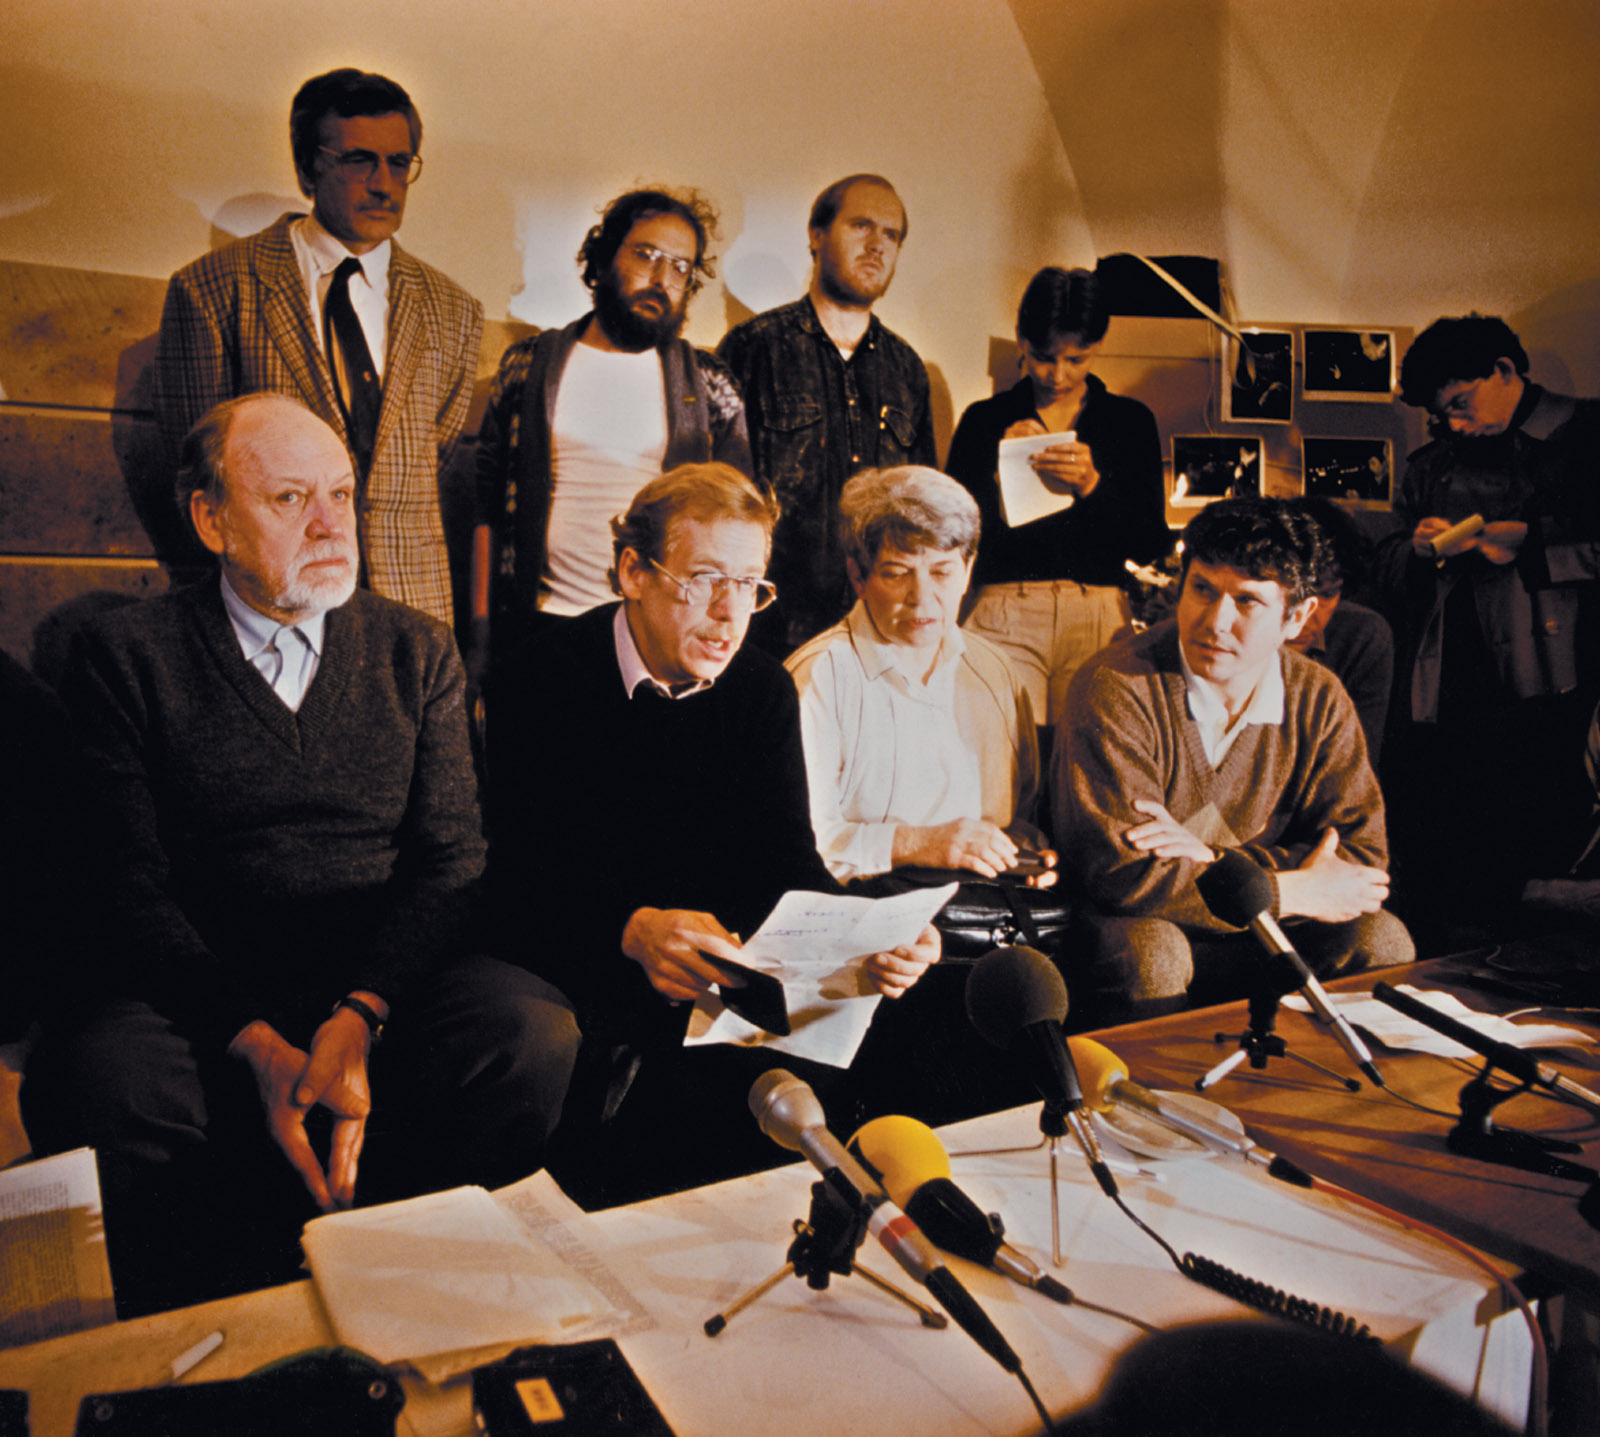 Václav Havel speaking to journalists during the Velvet Revolution, Prague, November 22, 1989